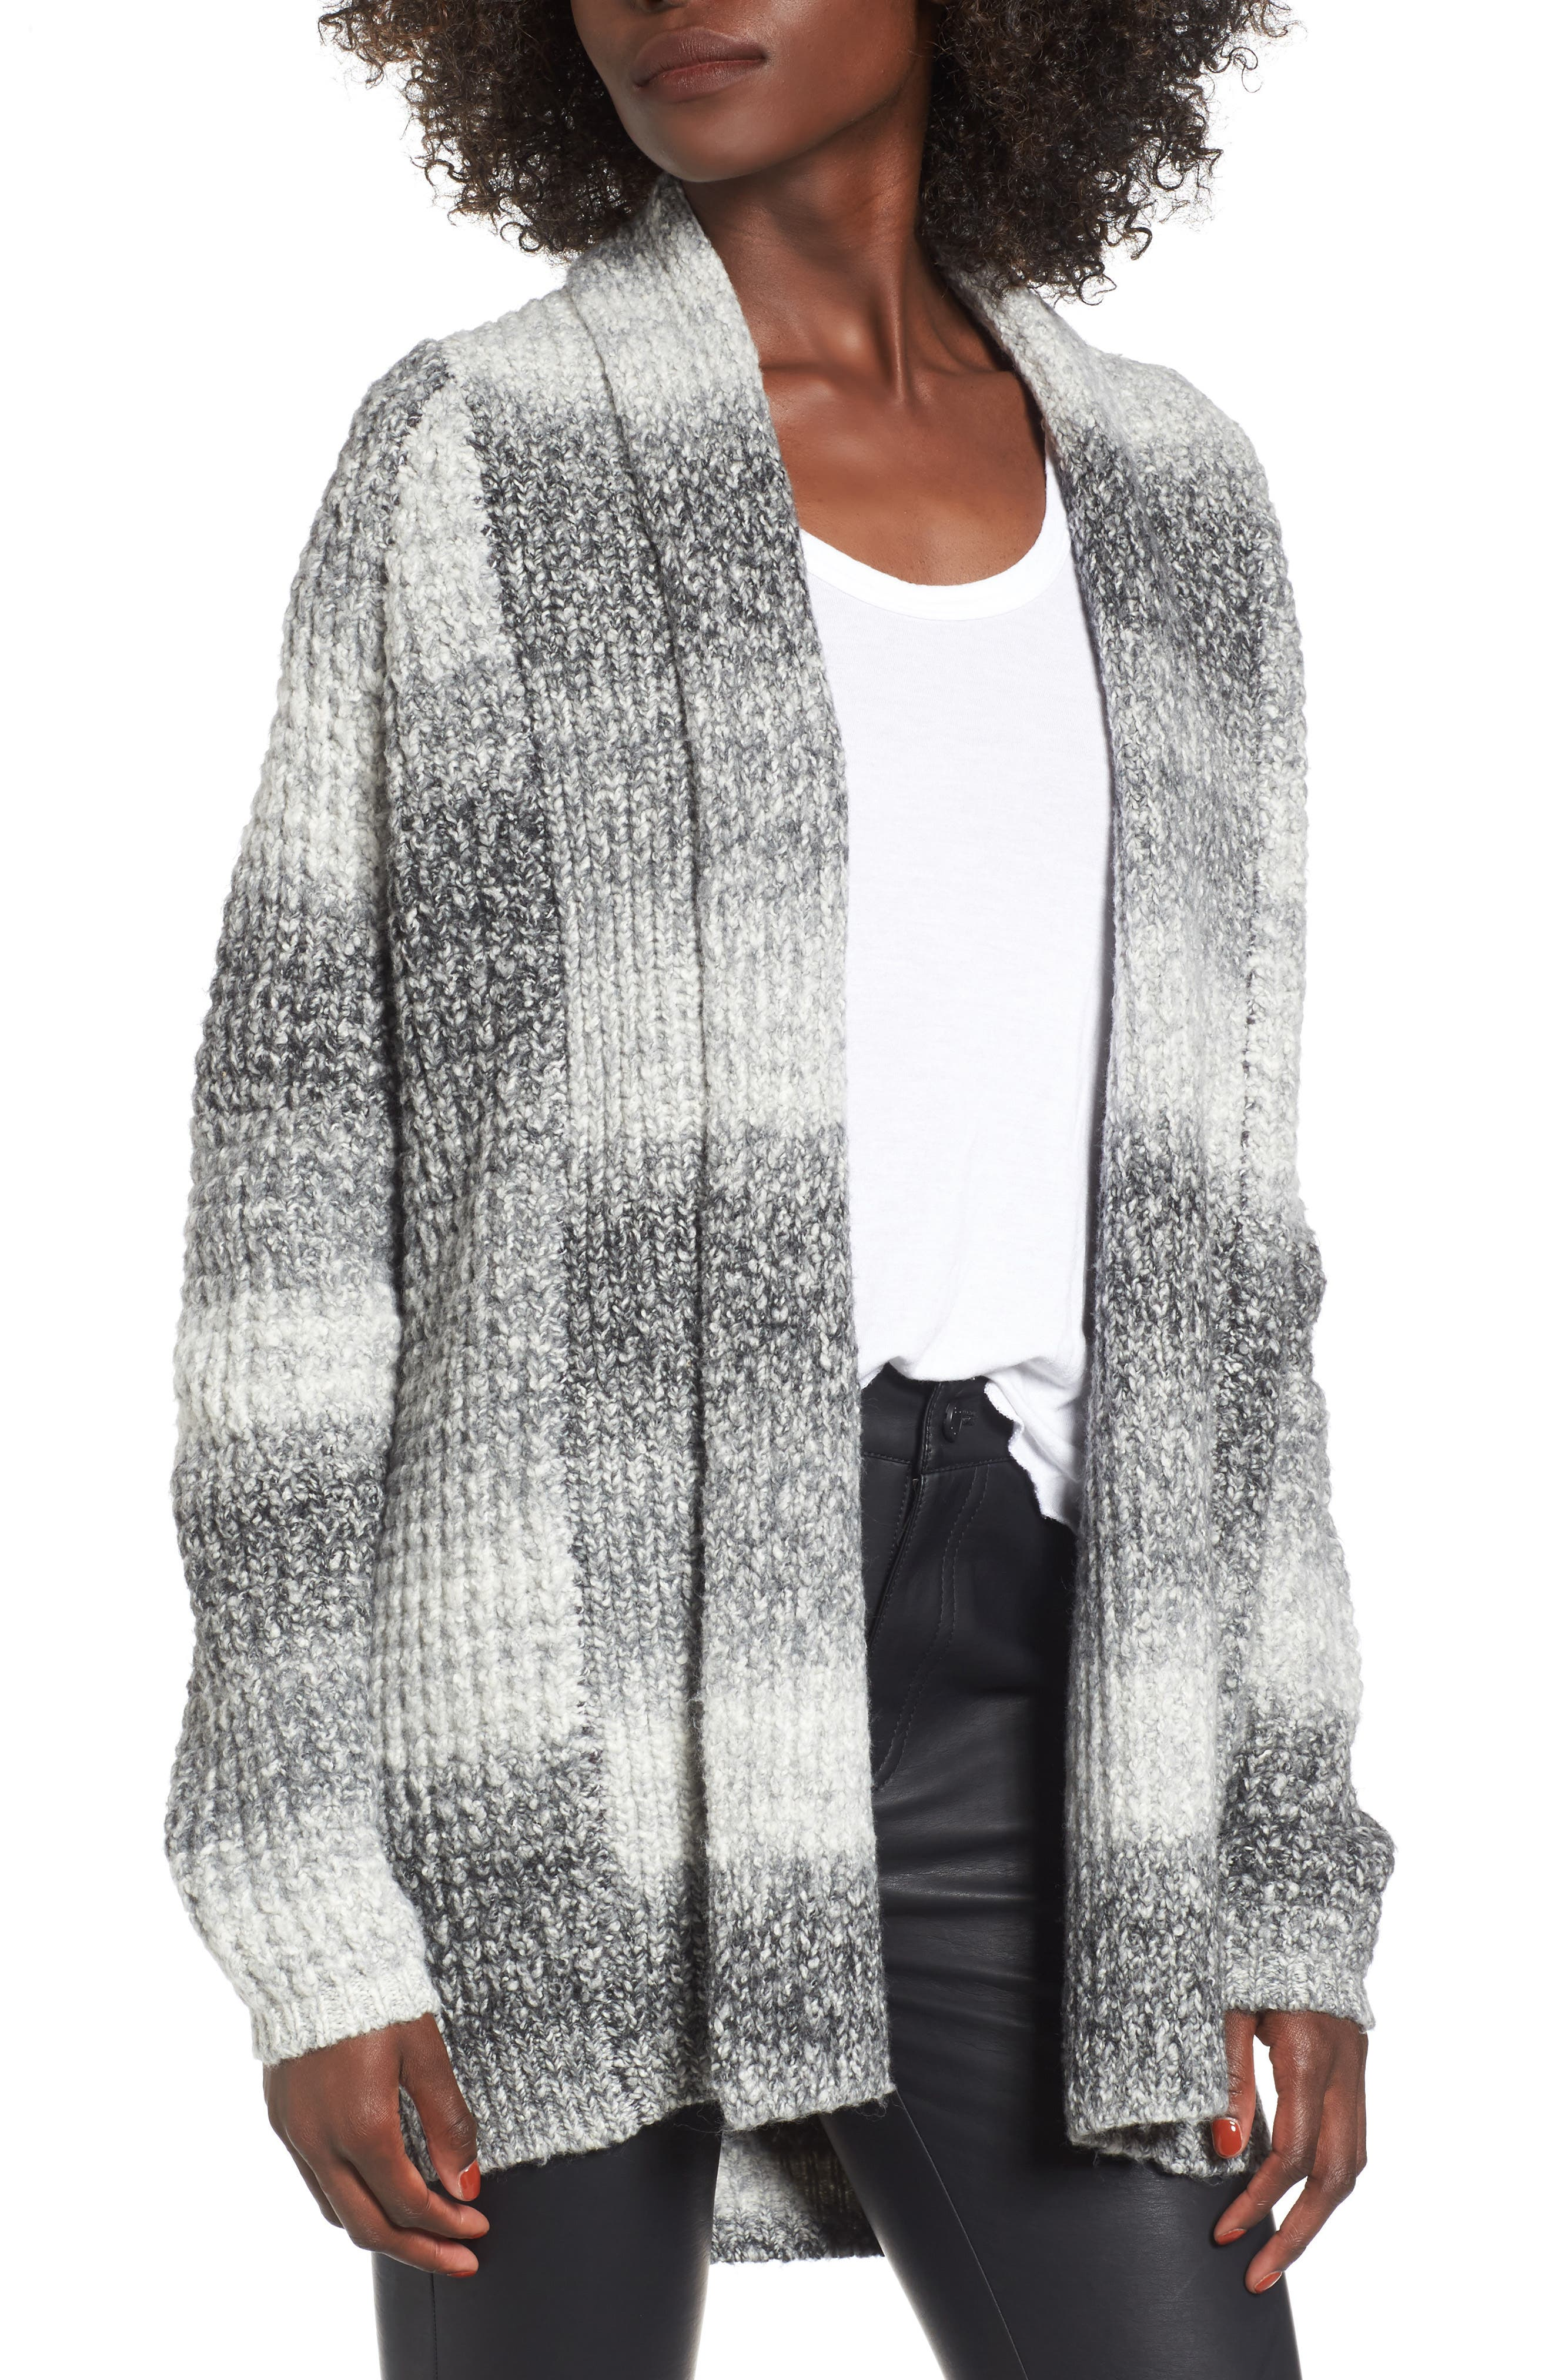 Ombré Cardigan,                             Main thumbnail 1, color,                             Grey Cloudy Ombre